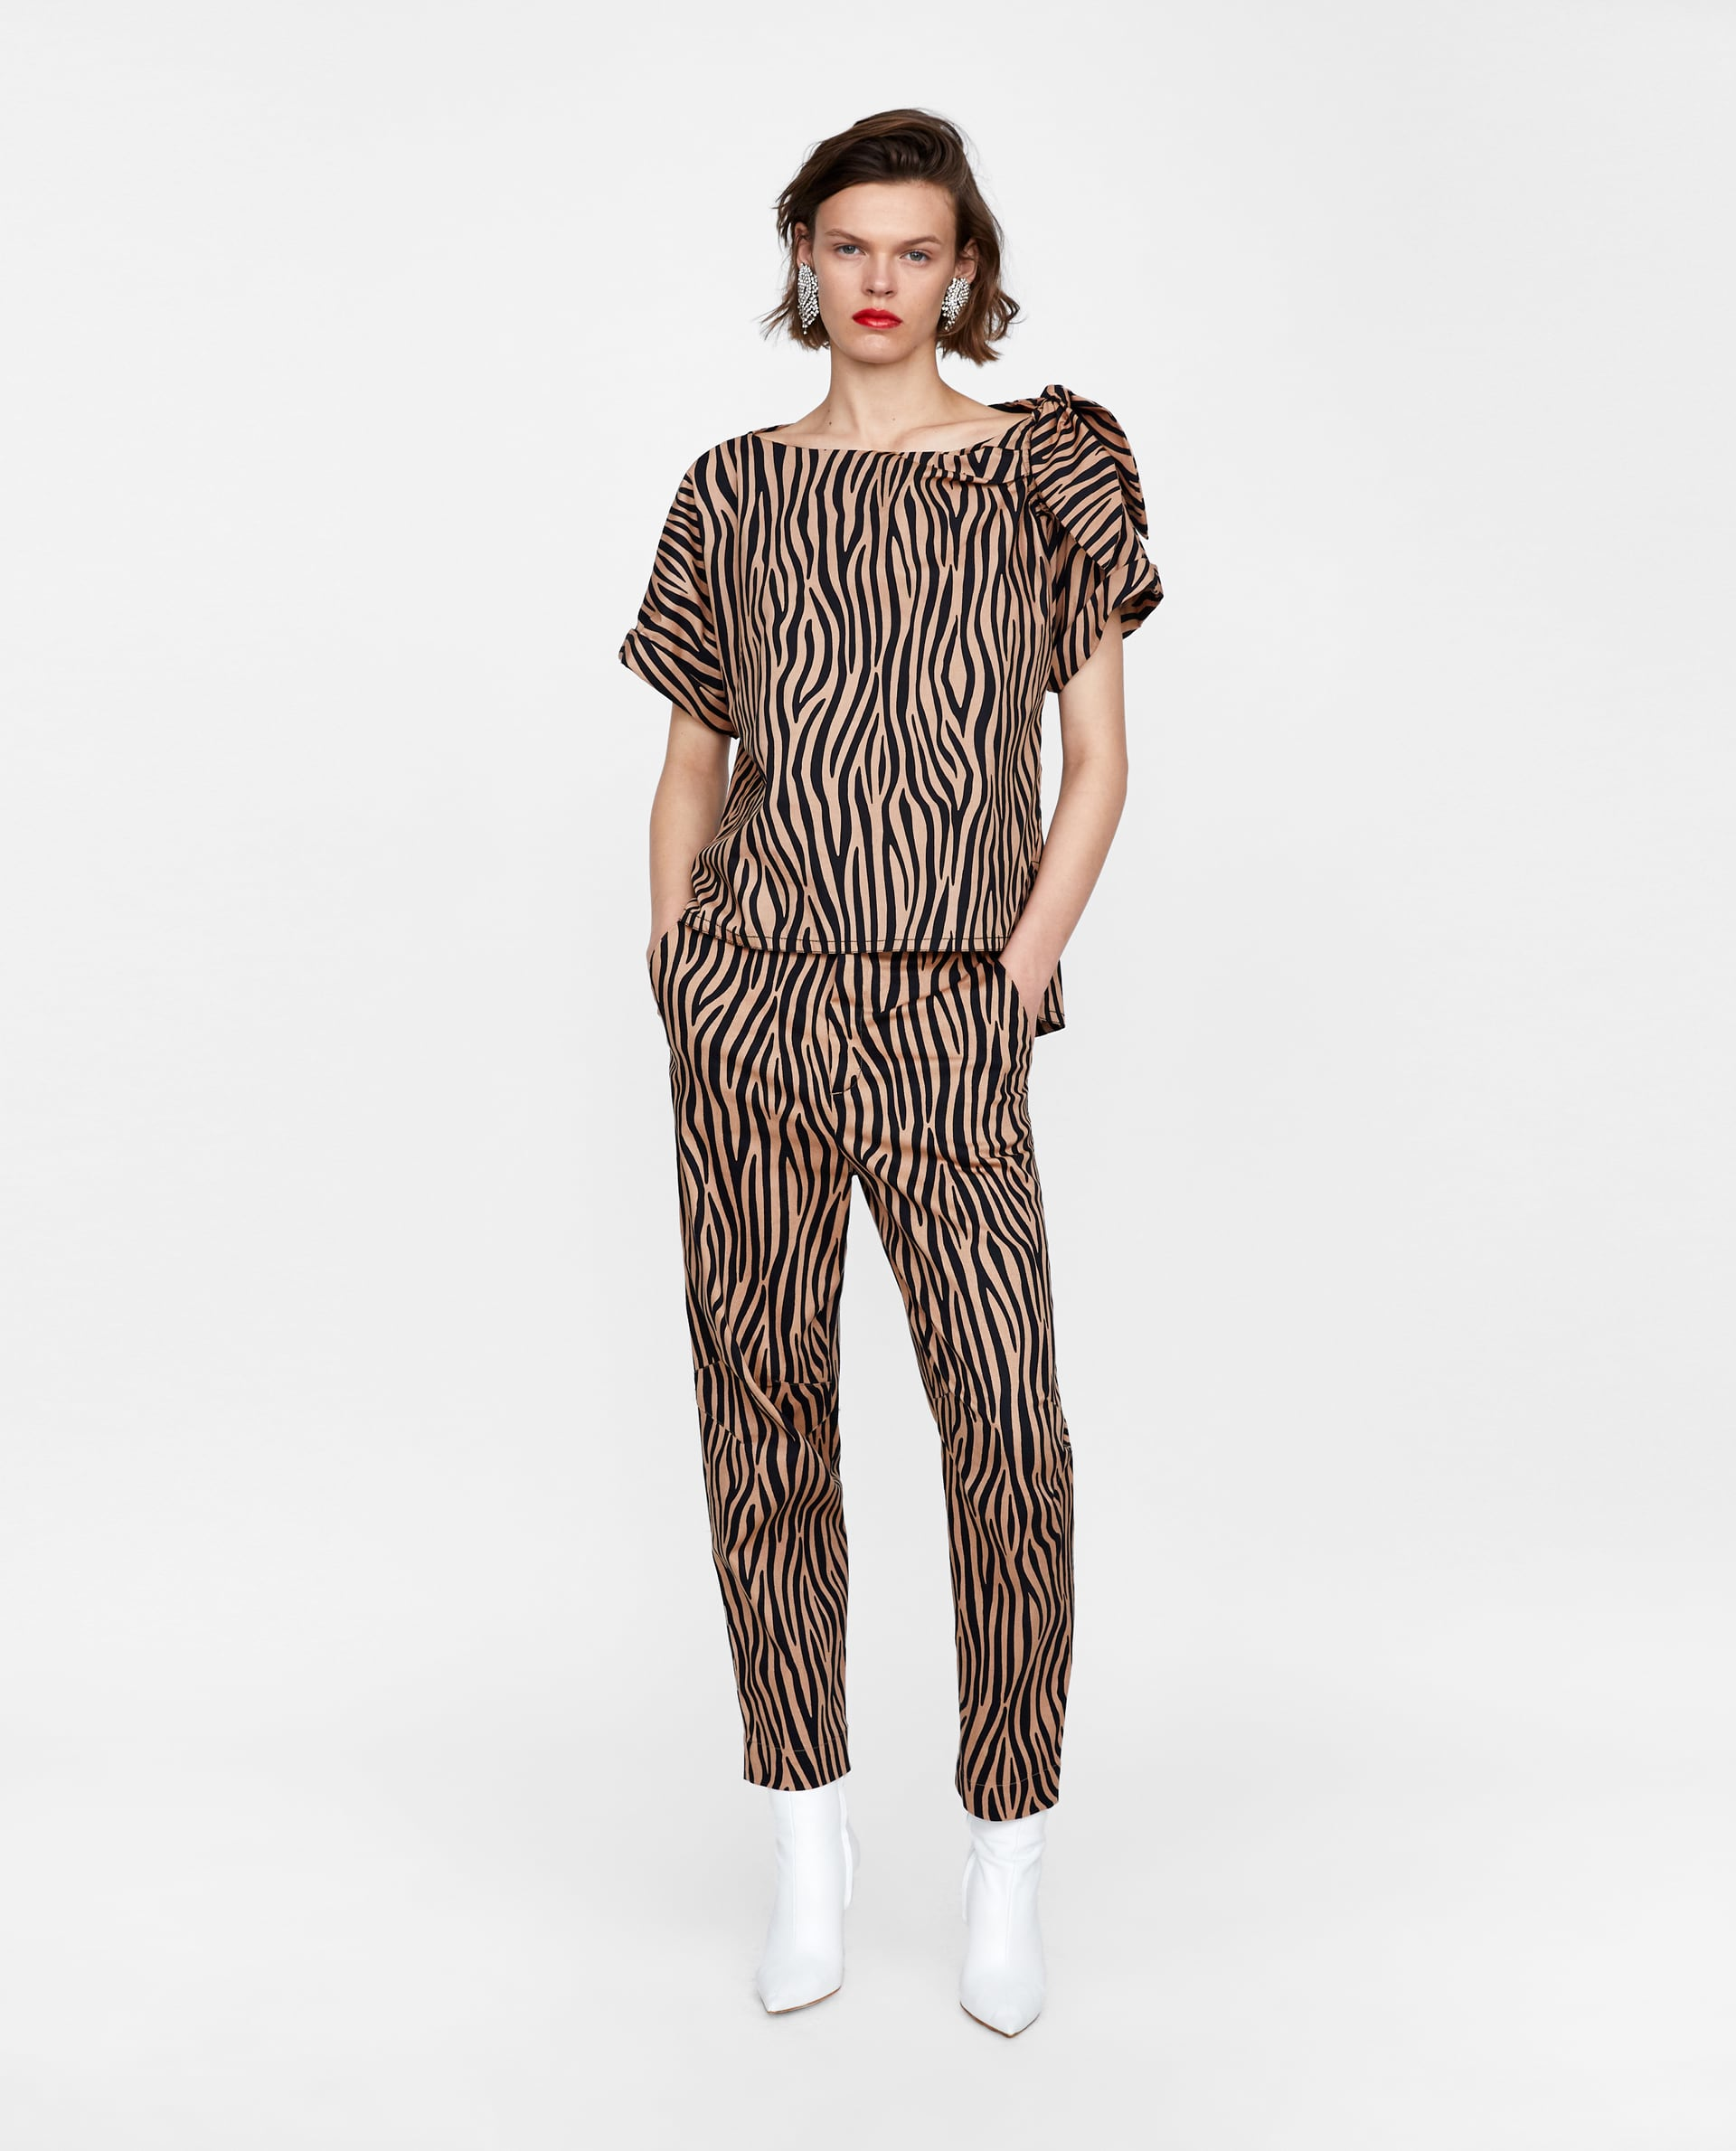 21a63ec9c5a1 Zara s New Autumn Arrivals Are A Blast From The Past